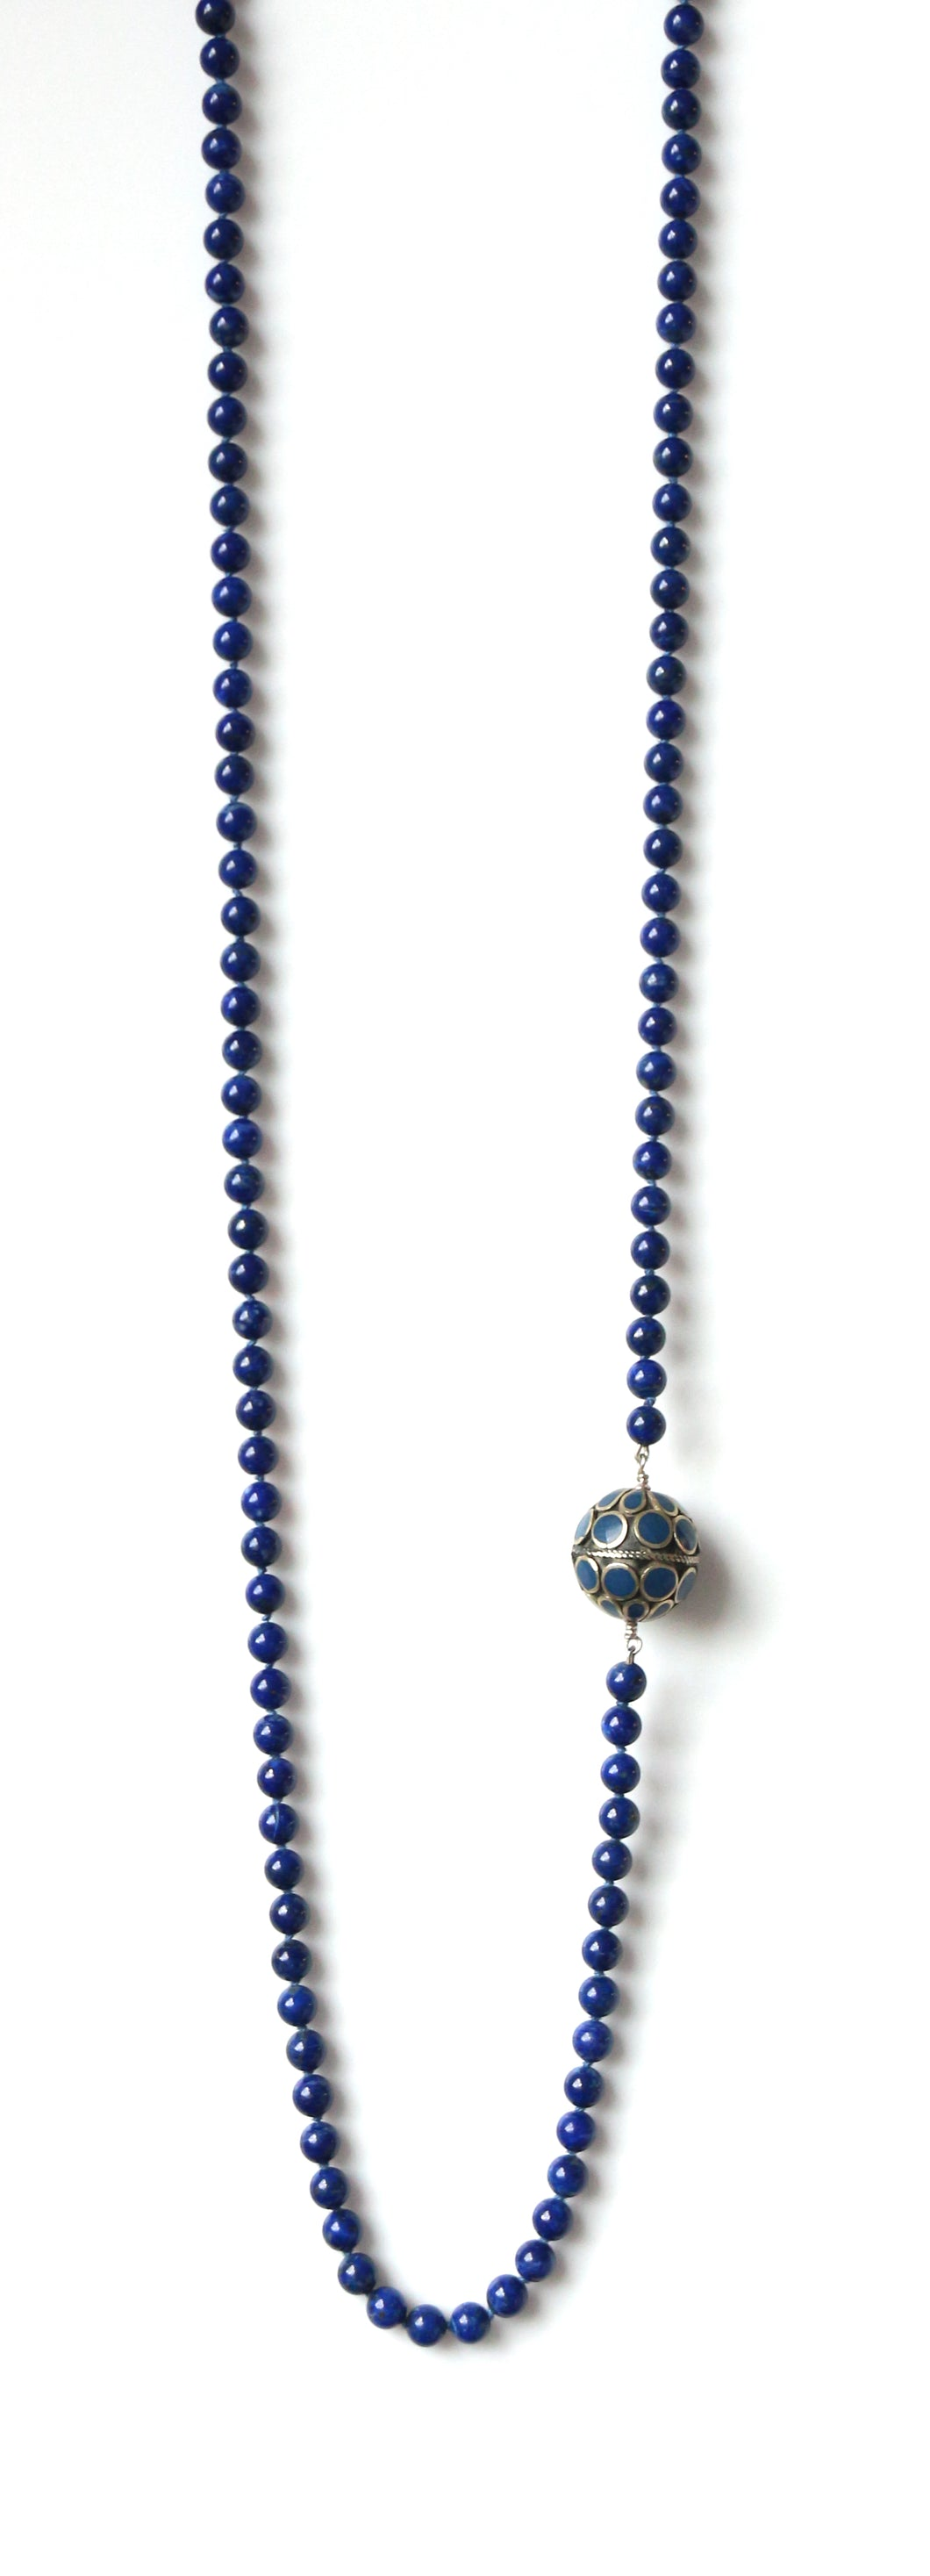 Australian Handmade Blue Long Necklace with Lapis Lazuli and Turkoman Bead Feature